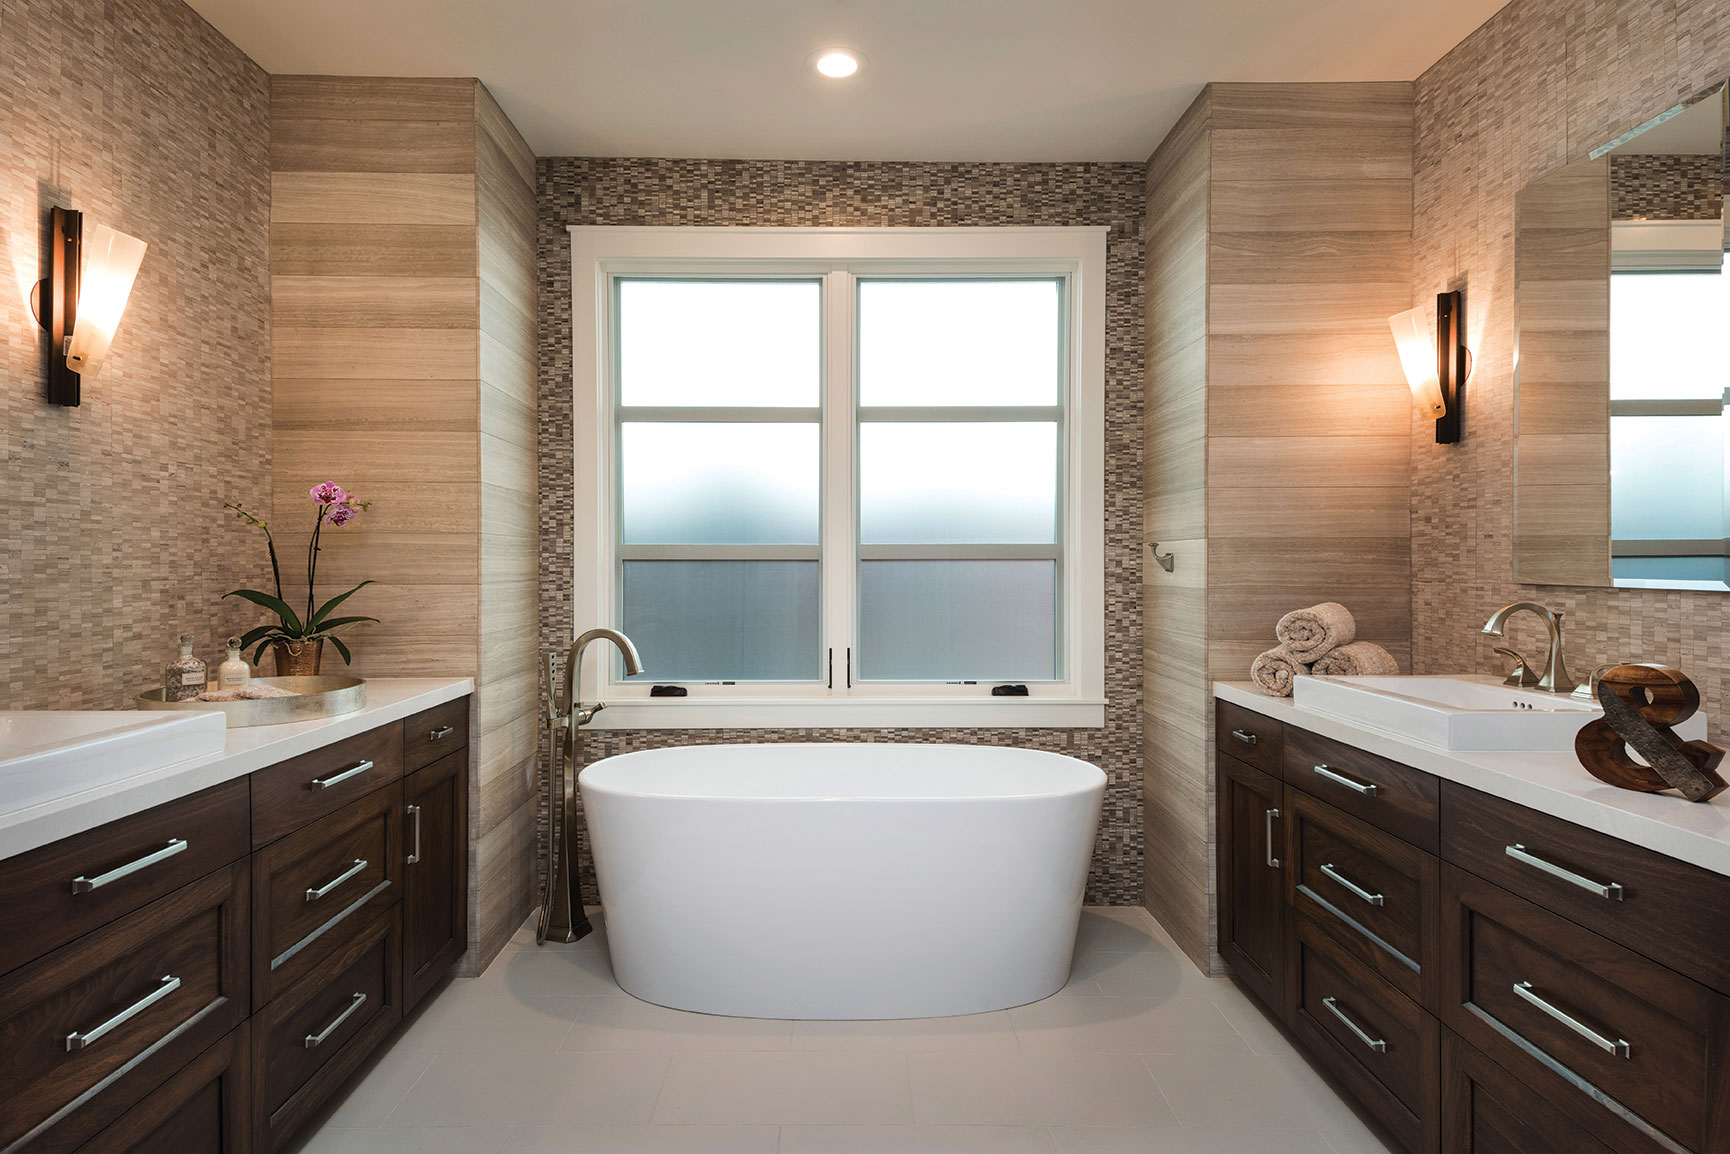 stand-alone sculptural tub bathroom in la jolla coastal kid-friendly remodel